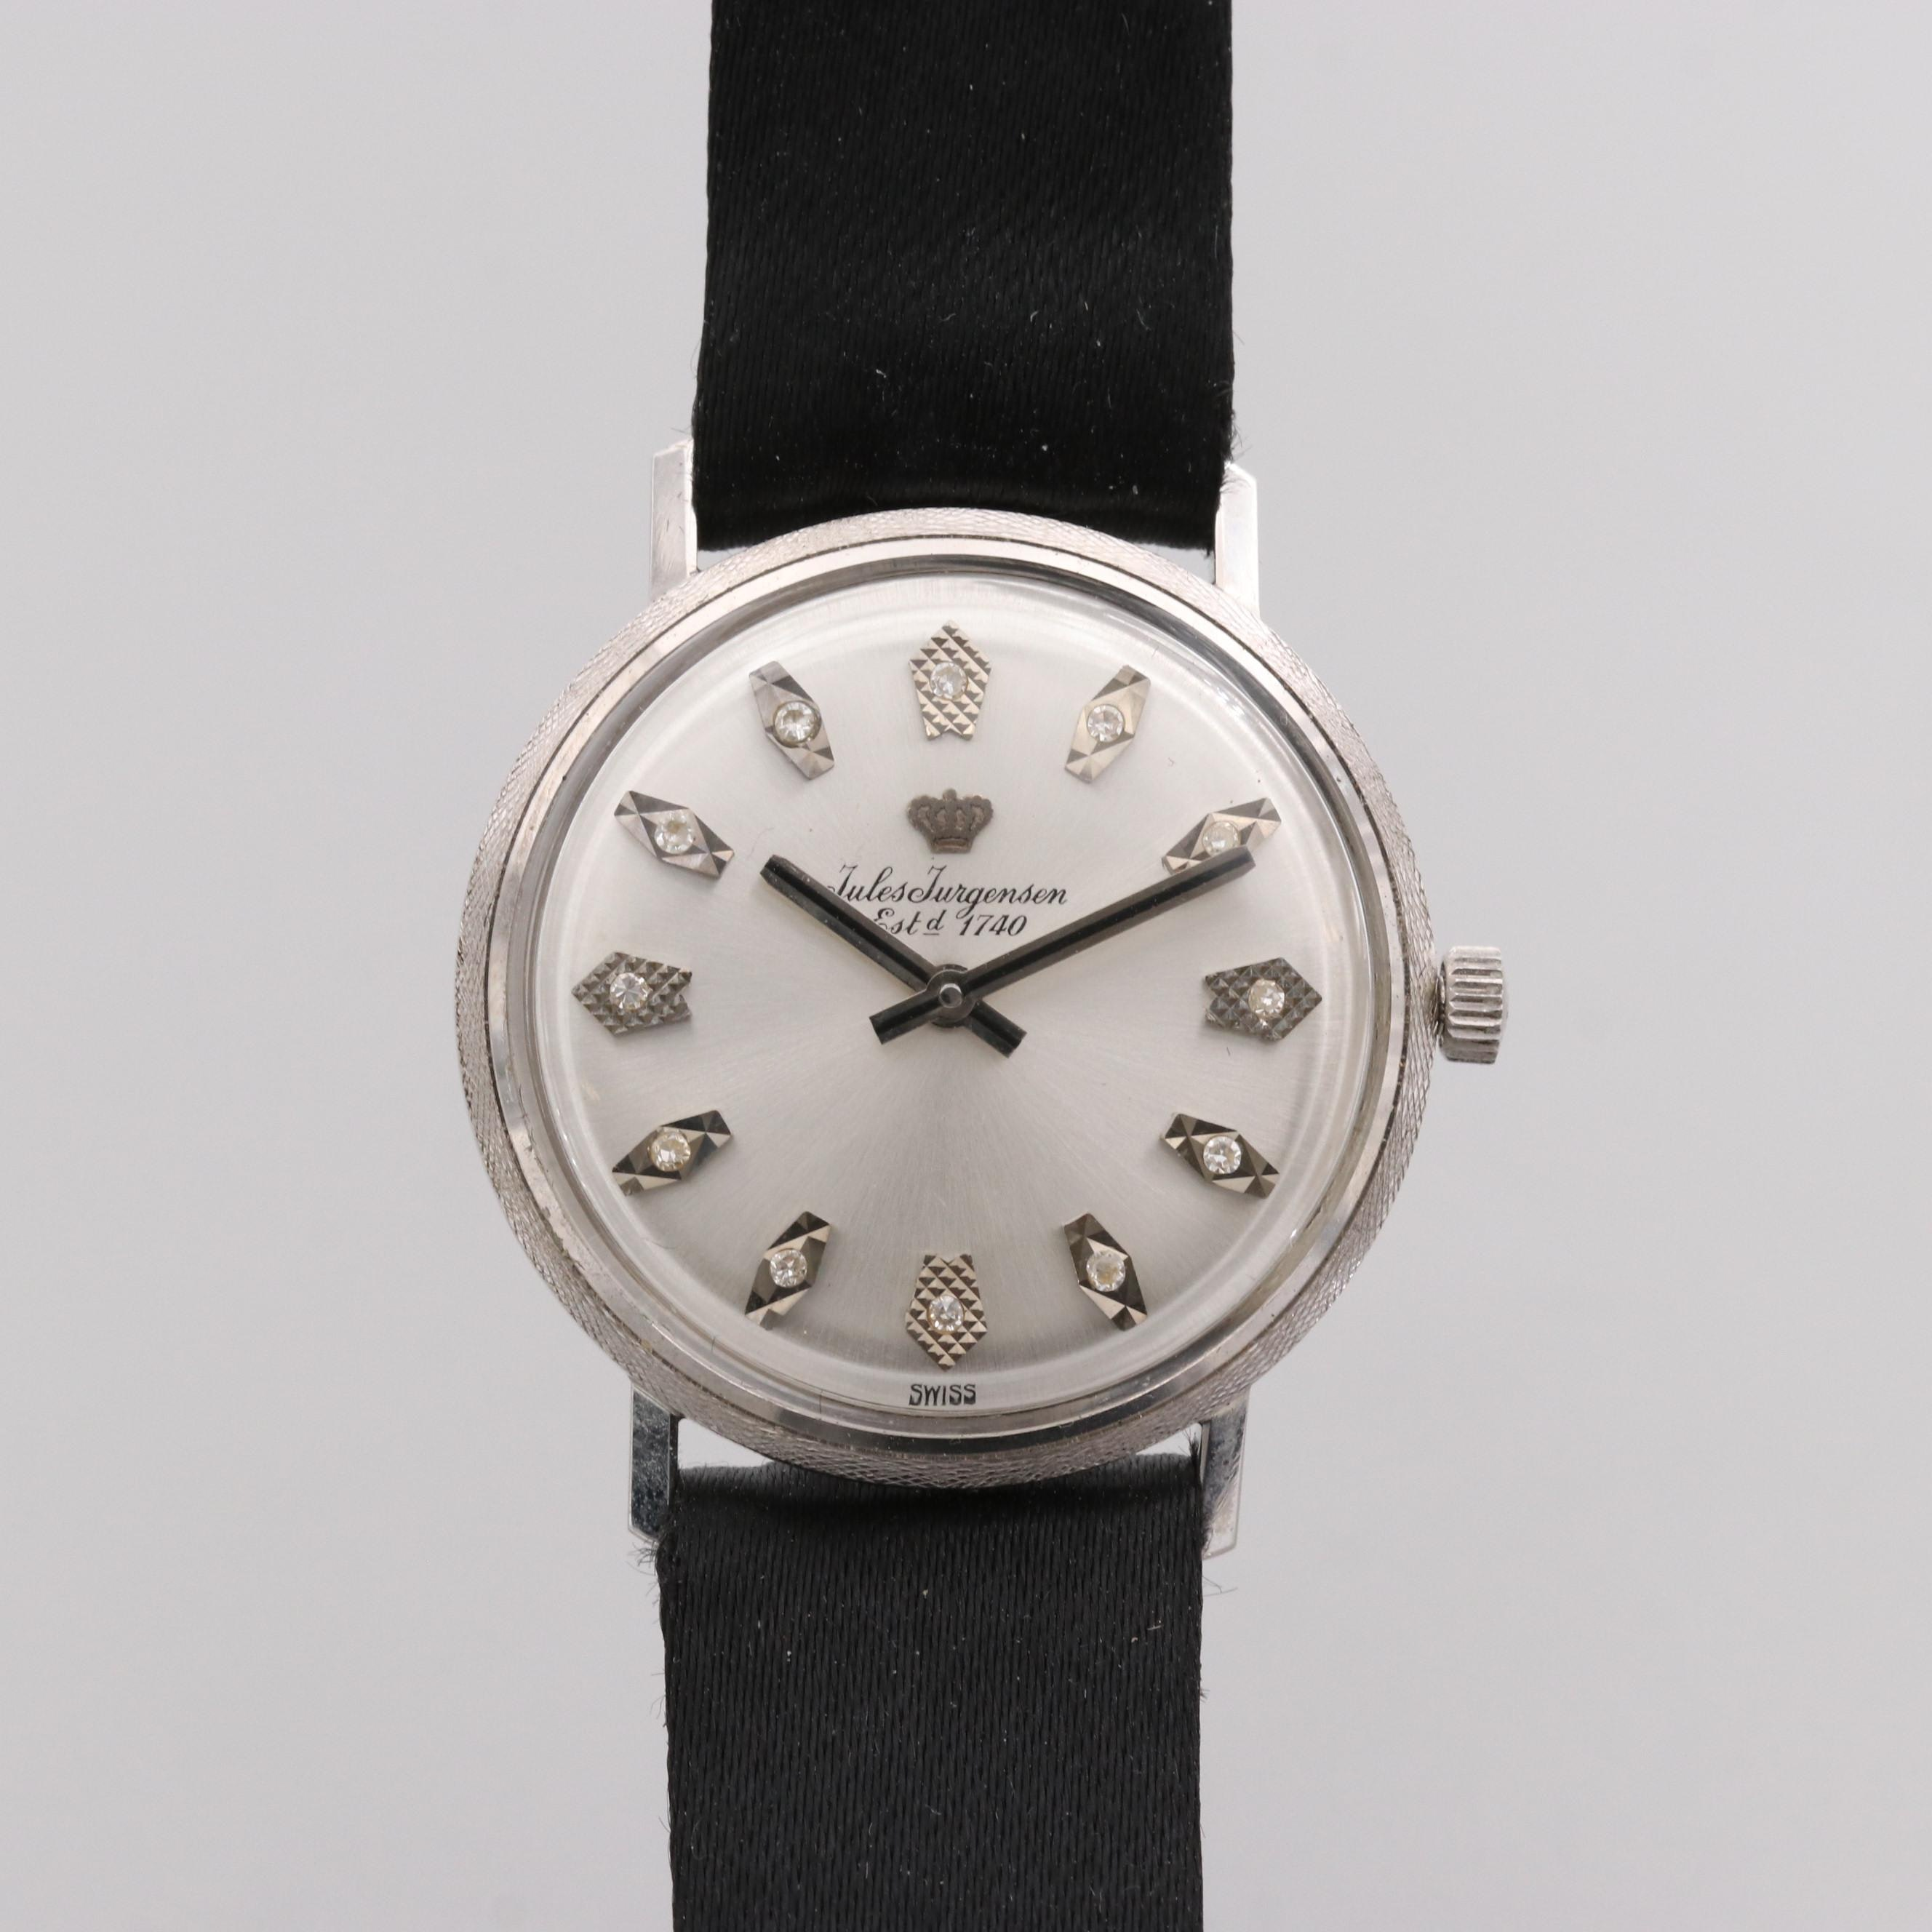 Jules Jürgensen 14K White Gold Wristwatch With Diamond Dial